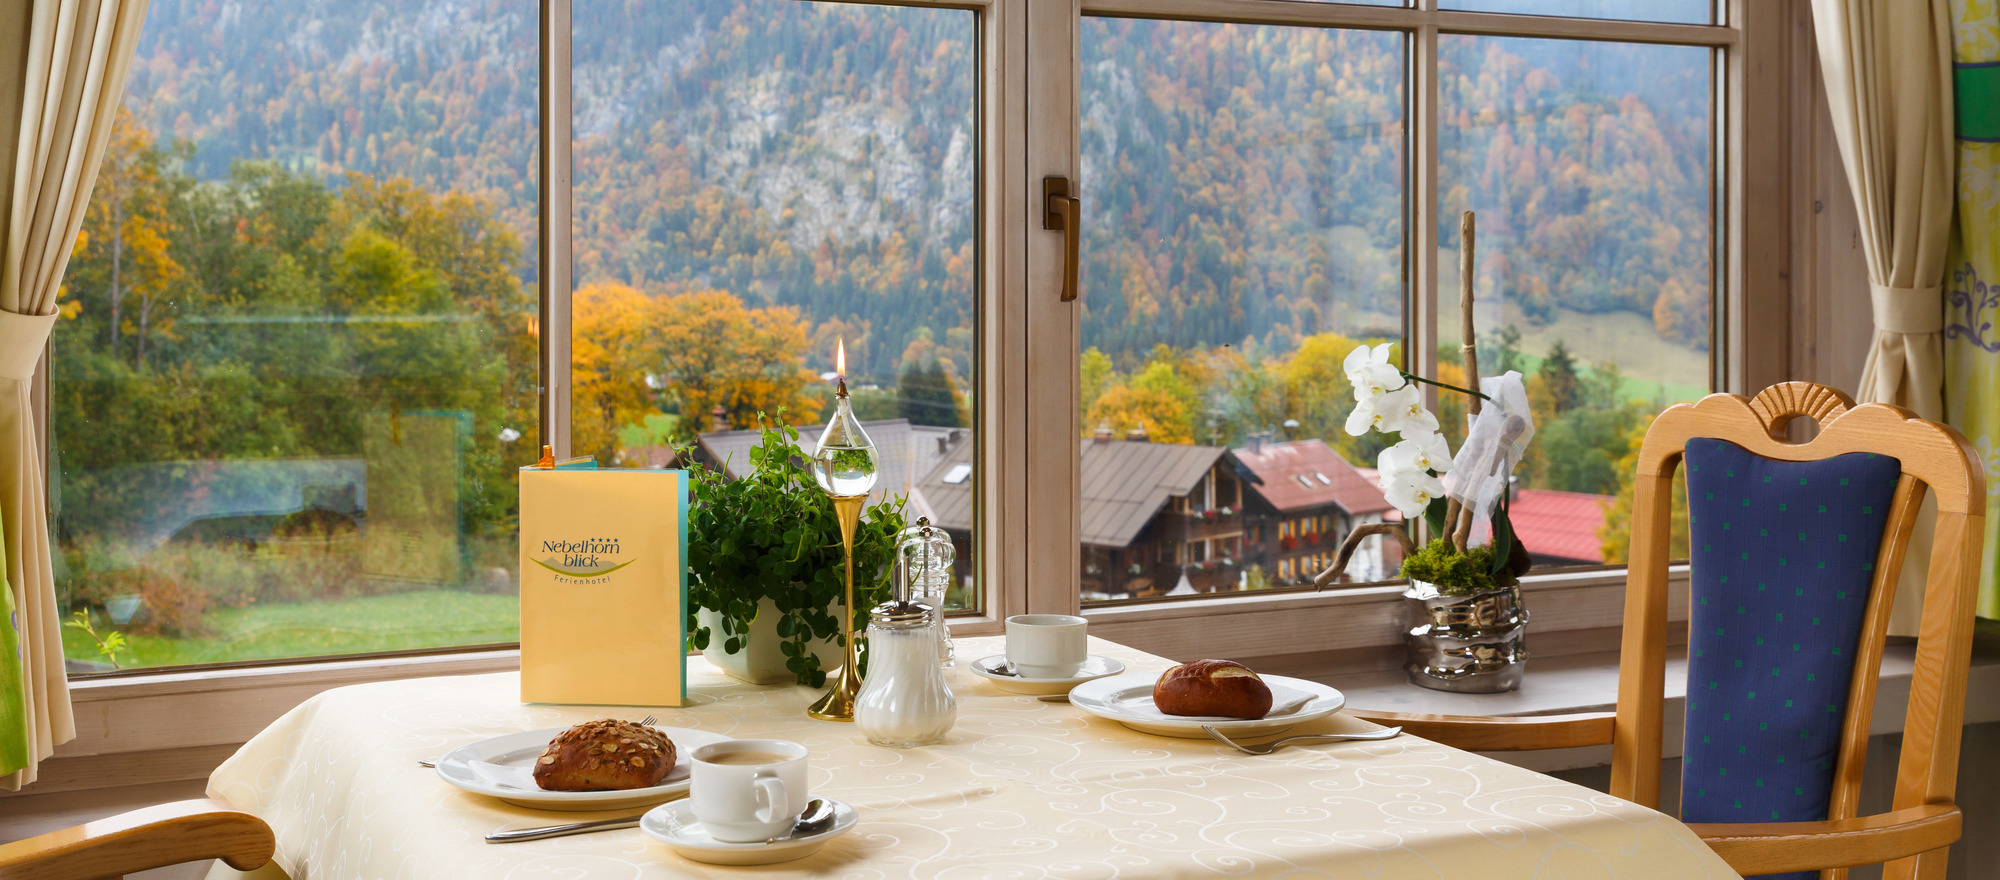 Breakfast with view on the Algaeu mountains in the 4-star hotel Ringhotel Rheinhotel Ferienhotel Nebelhornblick in Oberstdorf